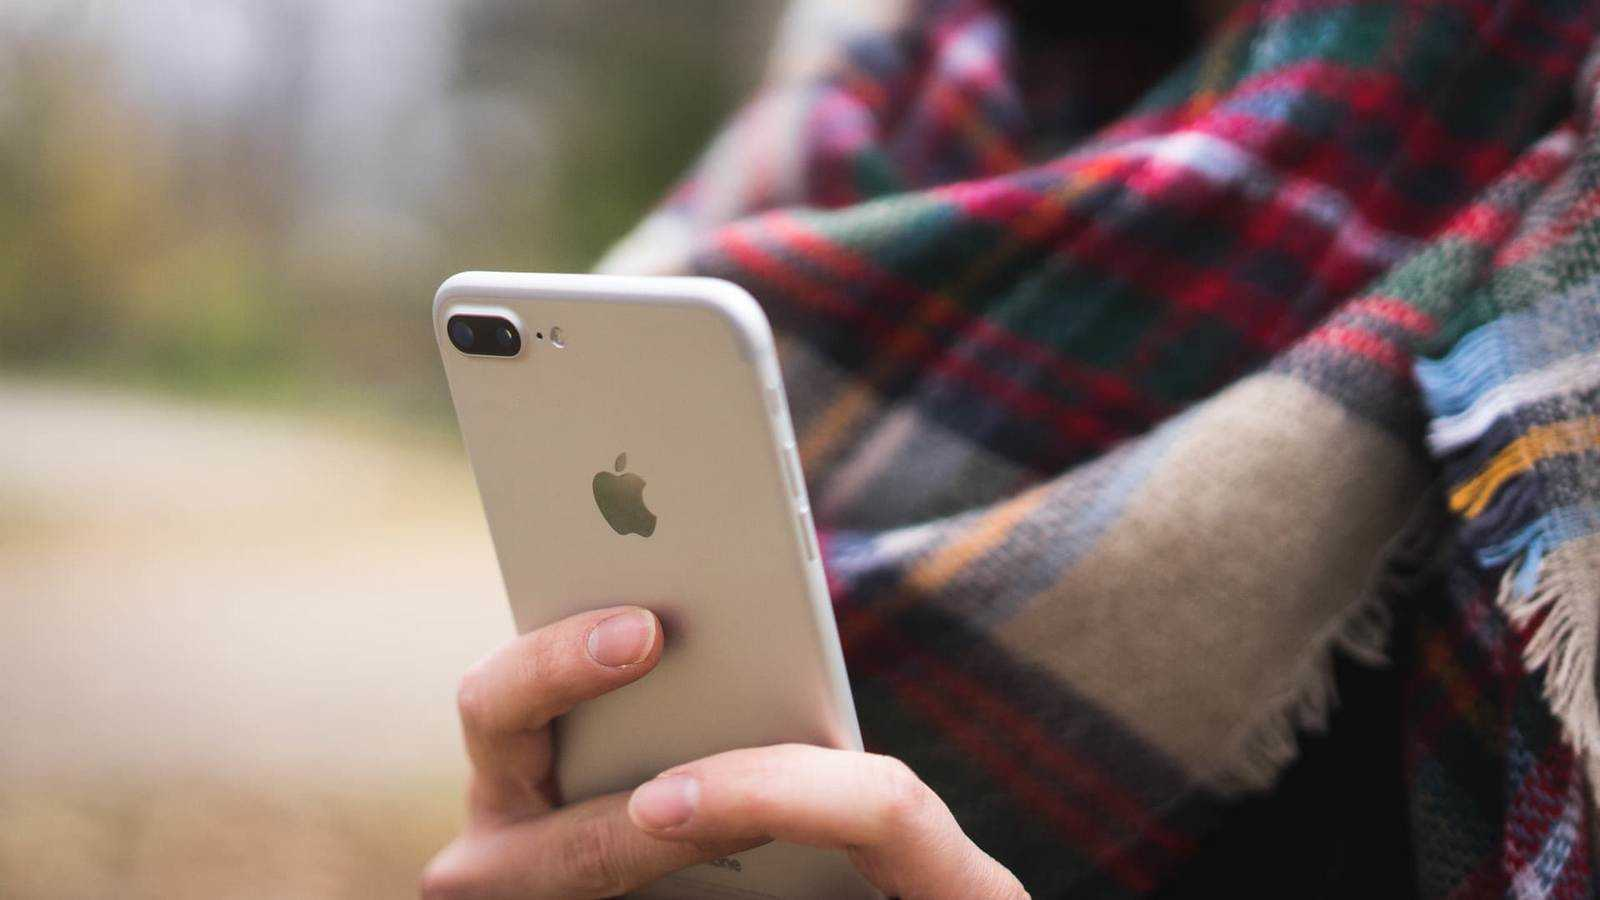 How to check an iPhone serial number